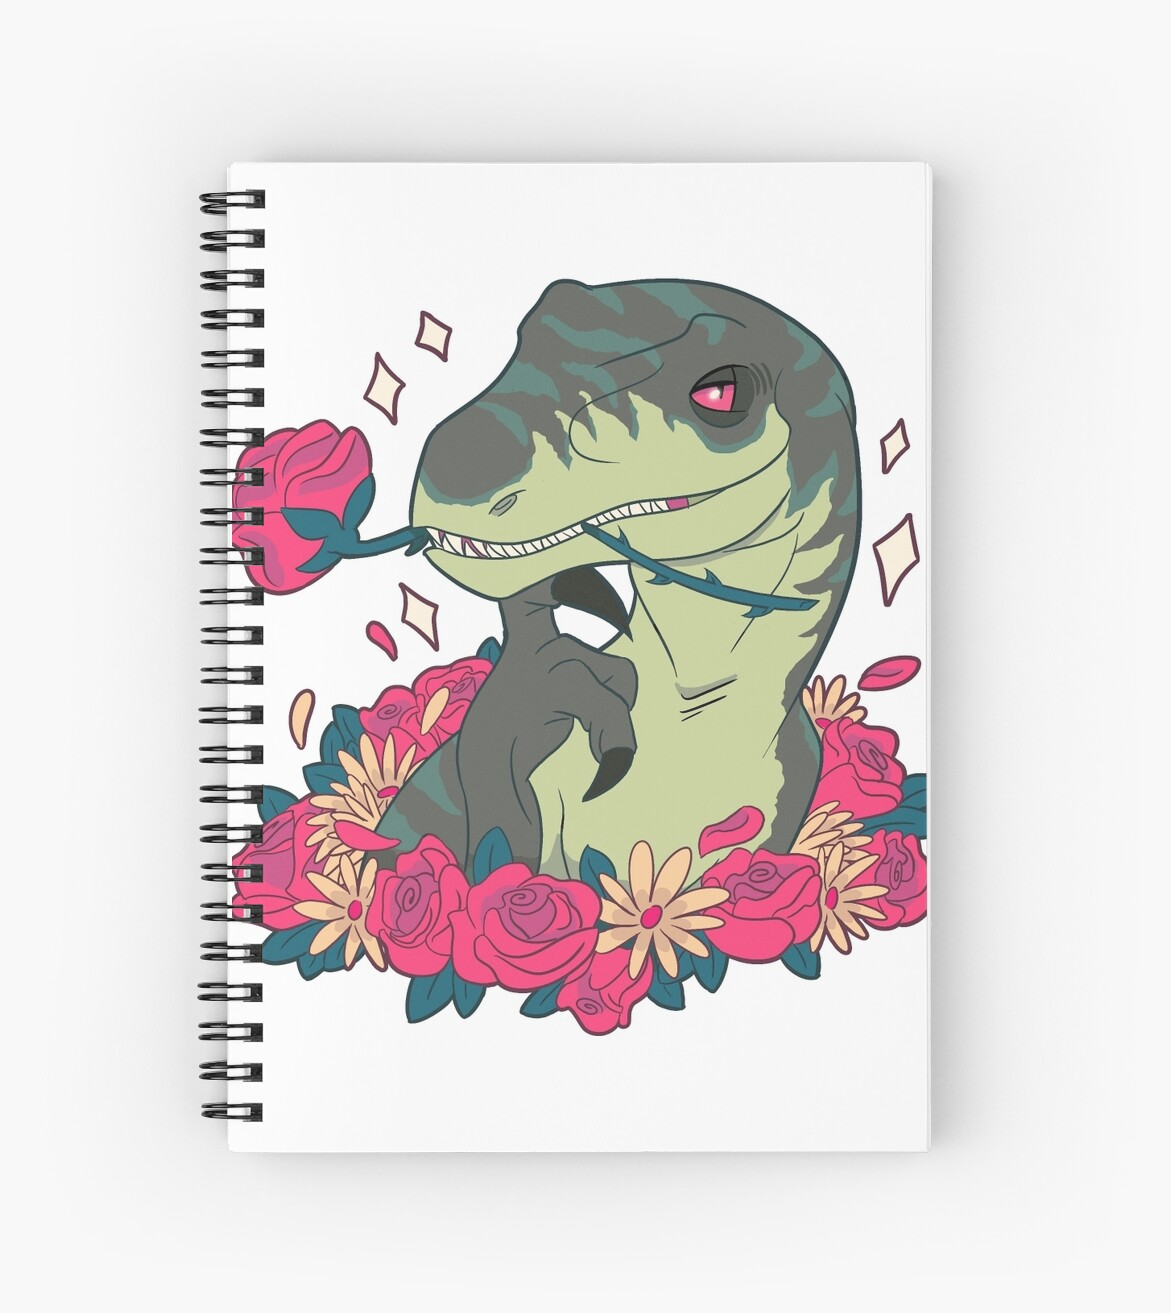 Ravishing Raptor by Daisy Spiers